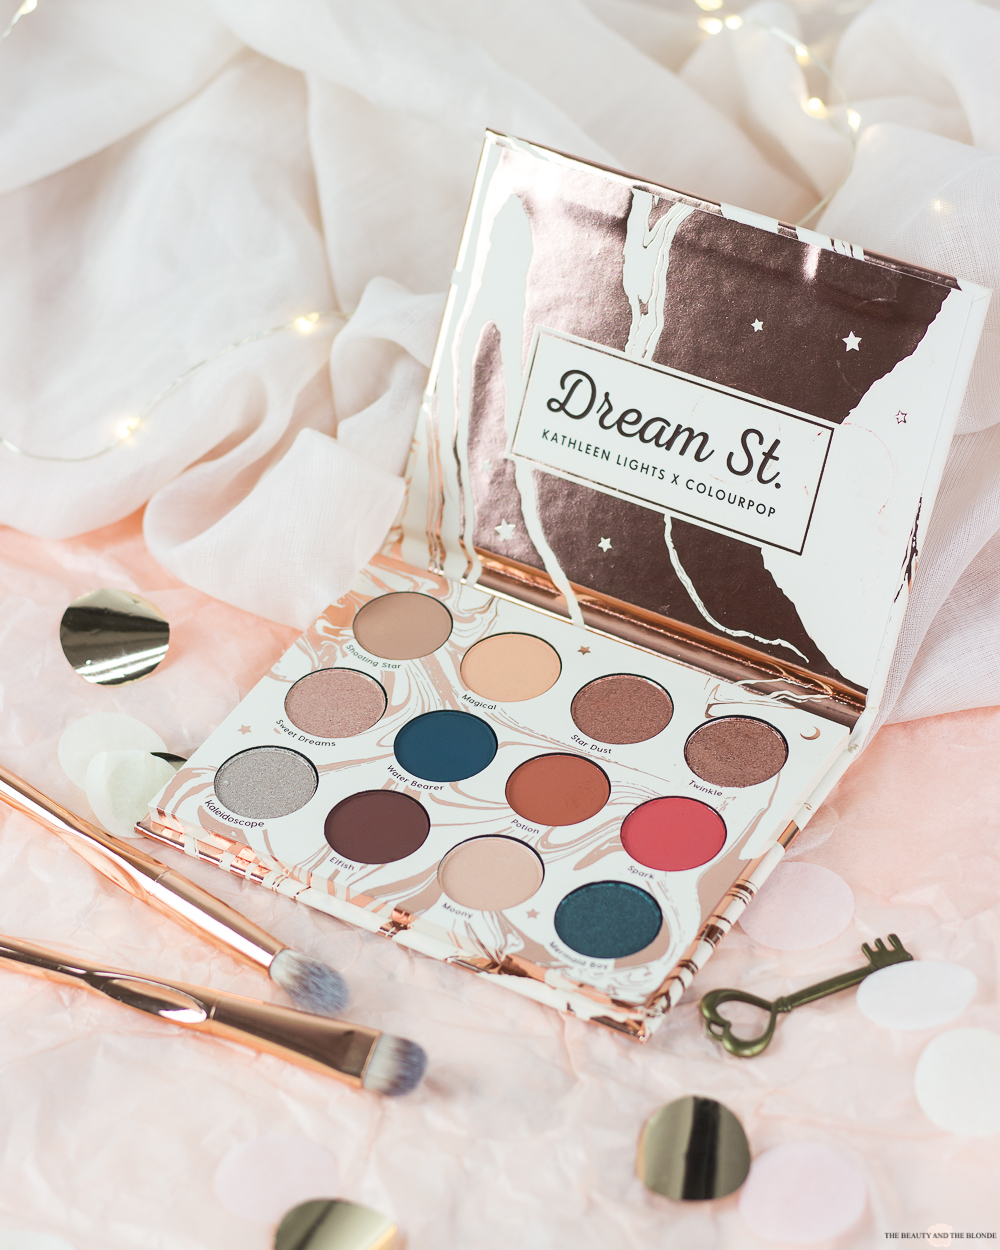 Colourpop Kathleen Lights Dream St. Palette Review Swatches